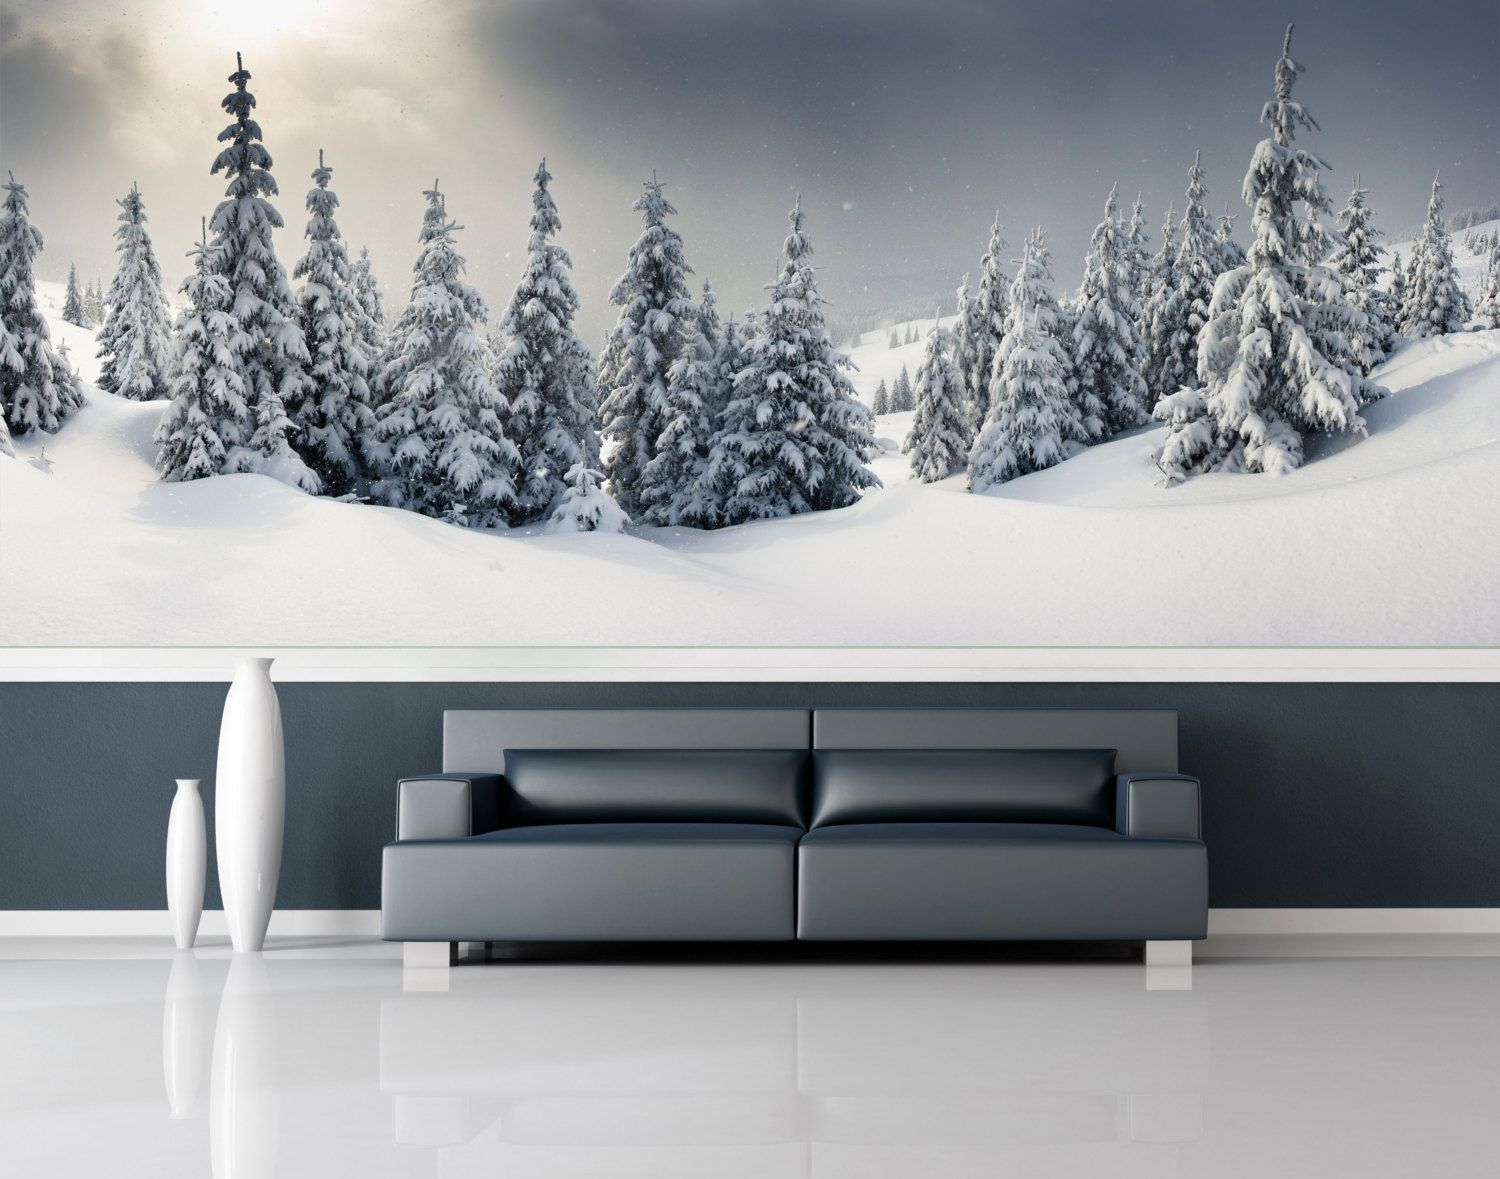 Snow forest wall mural repositionable peel stick wall paper snow forest wall mural repositionable peel stick wall paper wall covering by styleawall amipublicfo Choice Image